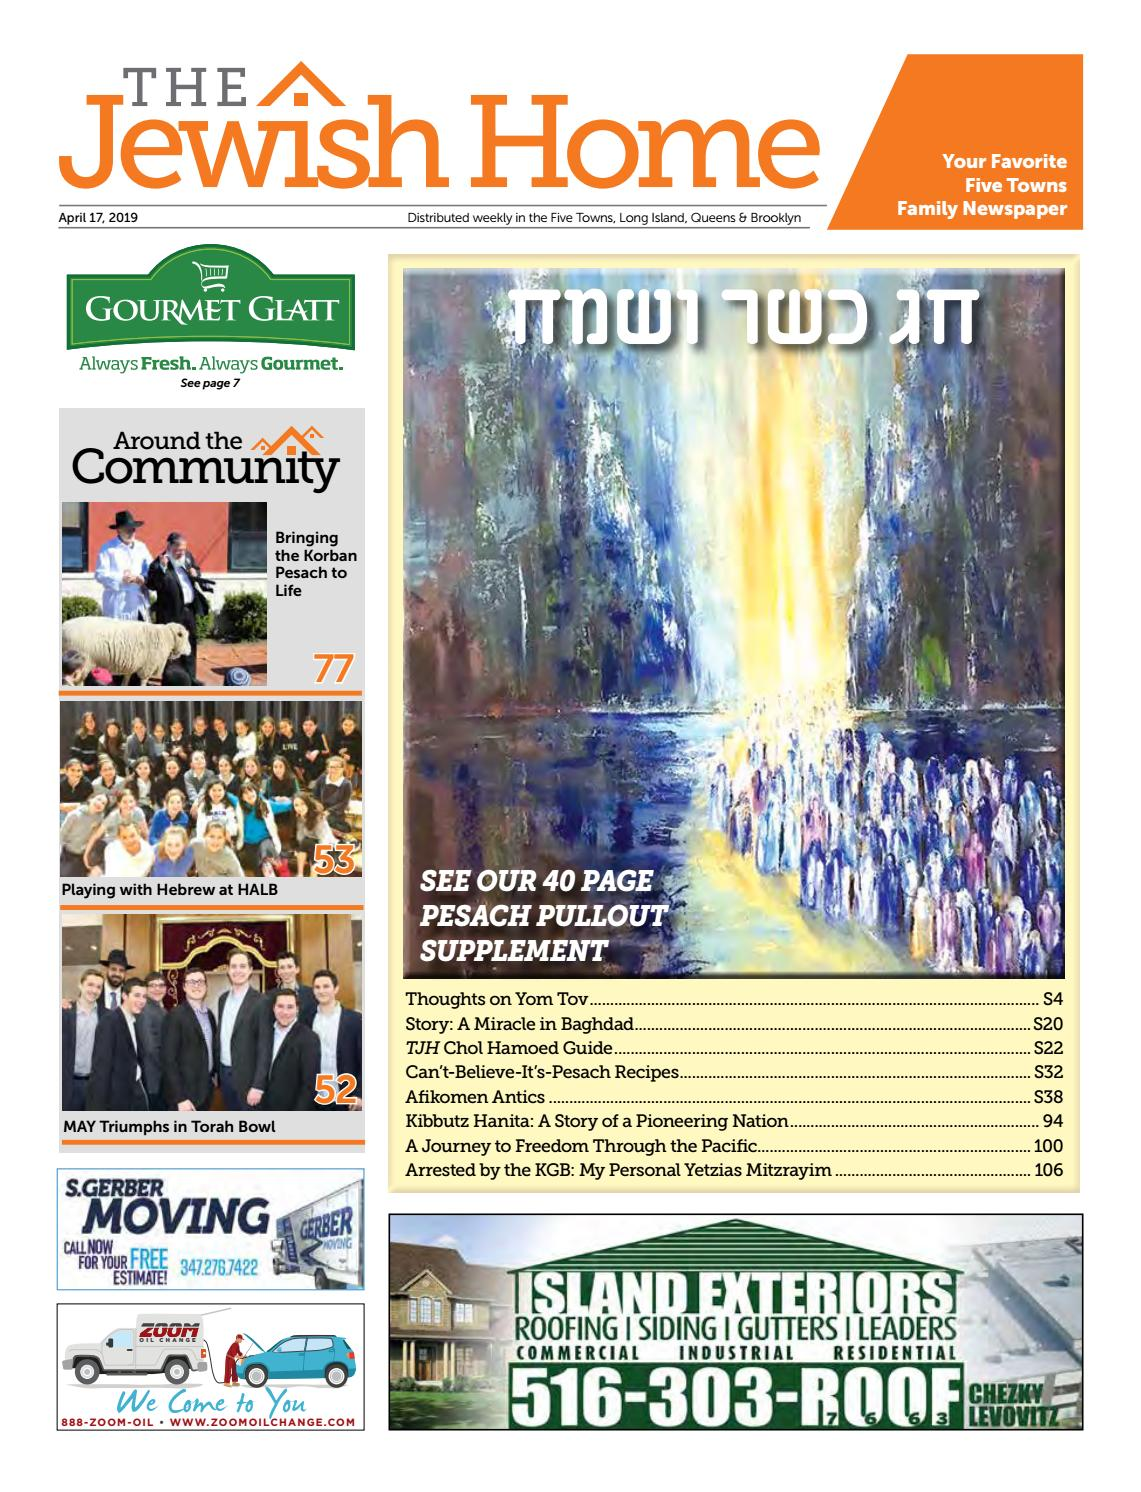 Five Towns Jewish Home - 4-17-19 by Yitzy Halpern - issuu